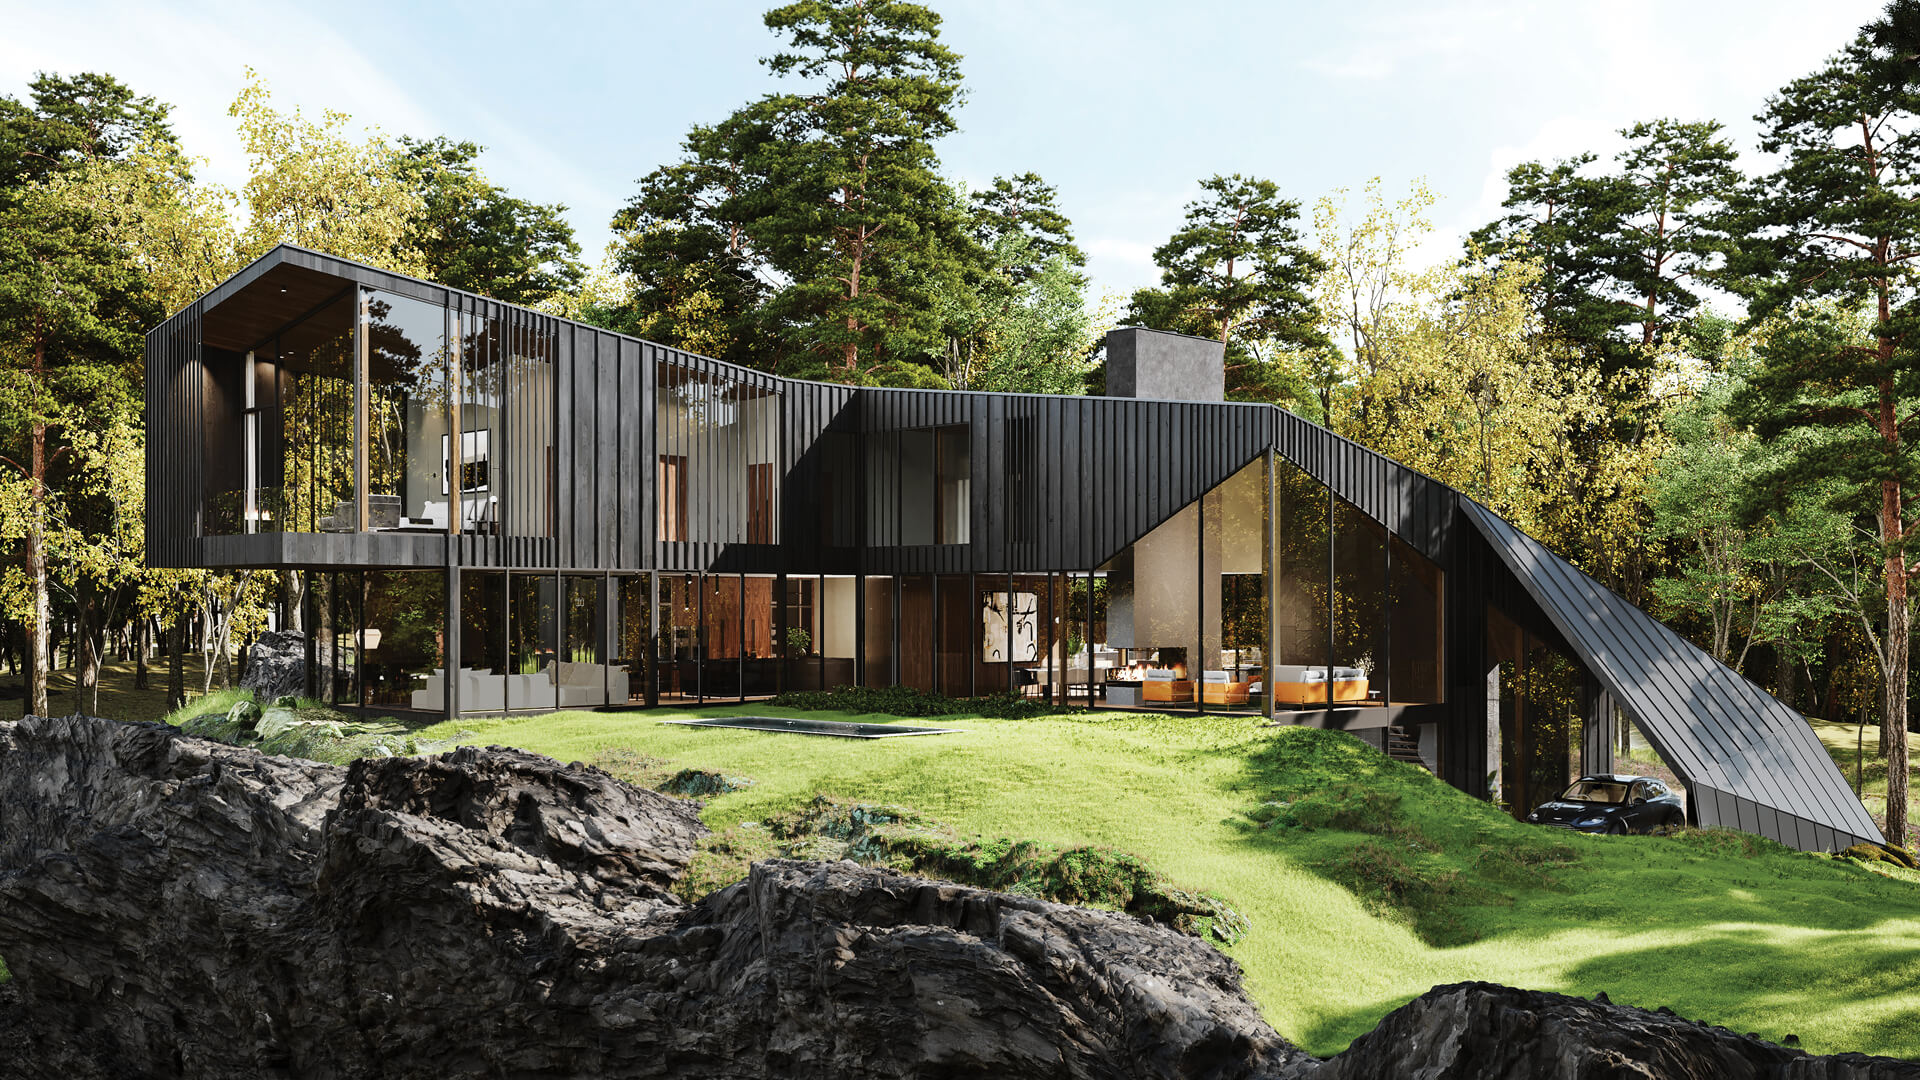 Aston Martin Design and S3 Architecture's Sylvan Rock reimagines residential luxury